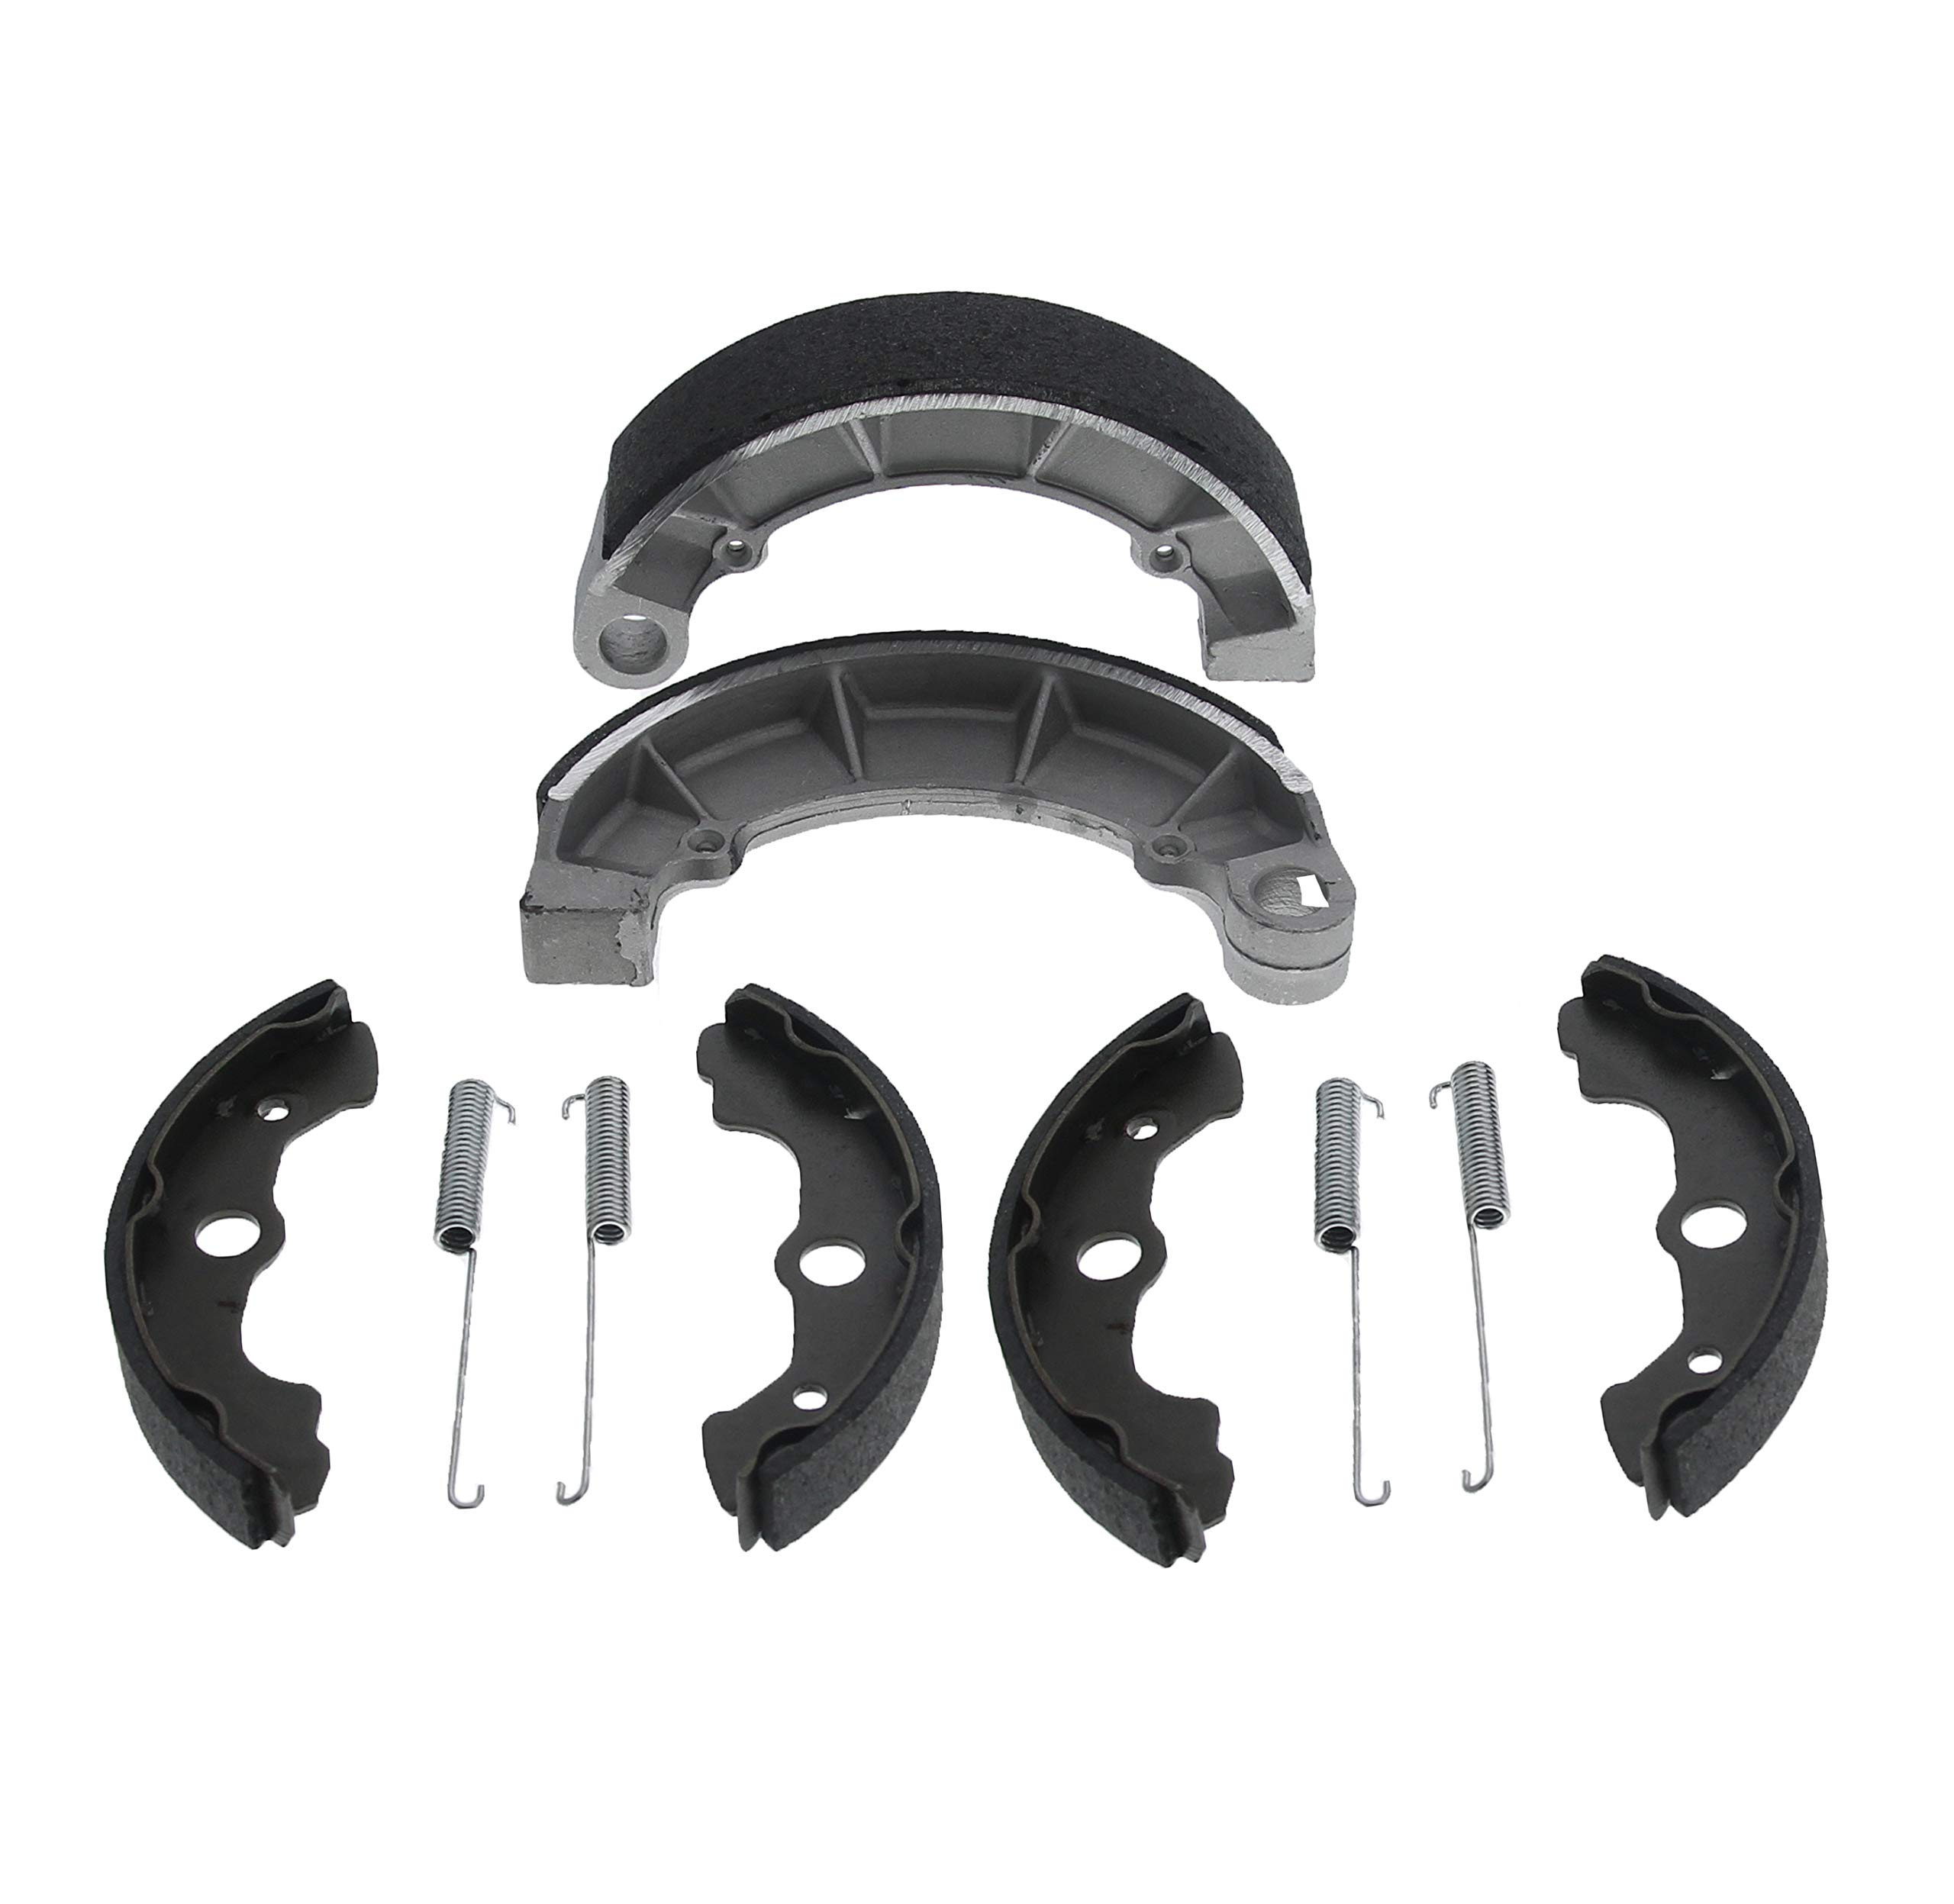 Race Driven OEM Replacement Standard Front and Rear Brake Shoes for Honda Foreman Rubicon 500 TRX500FA 4x4 by Race-Driven